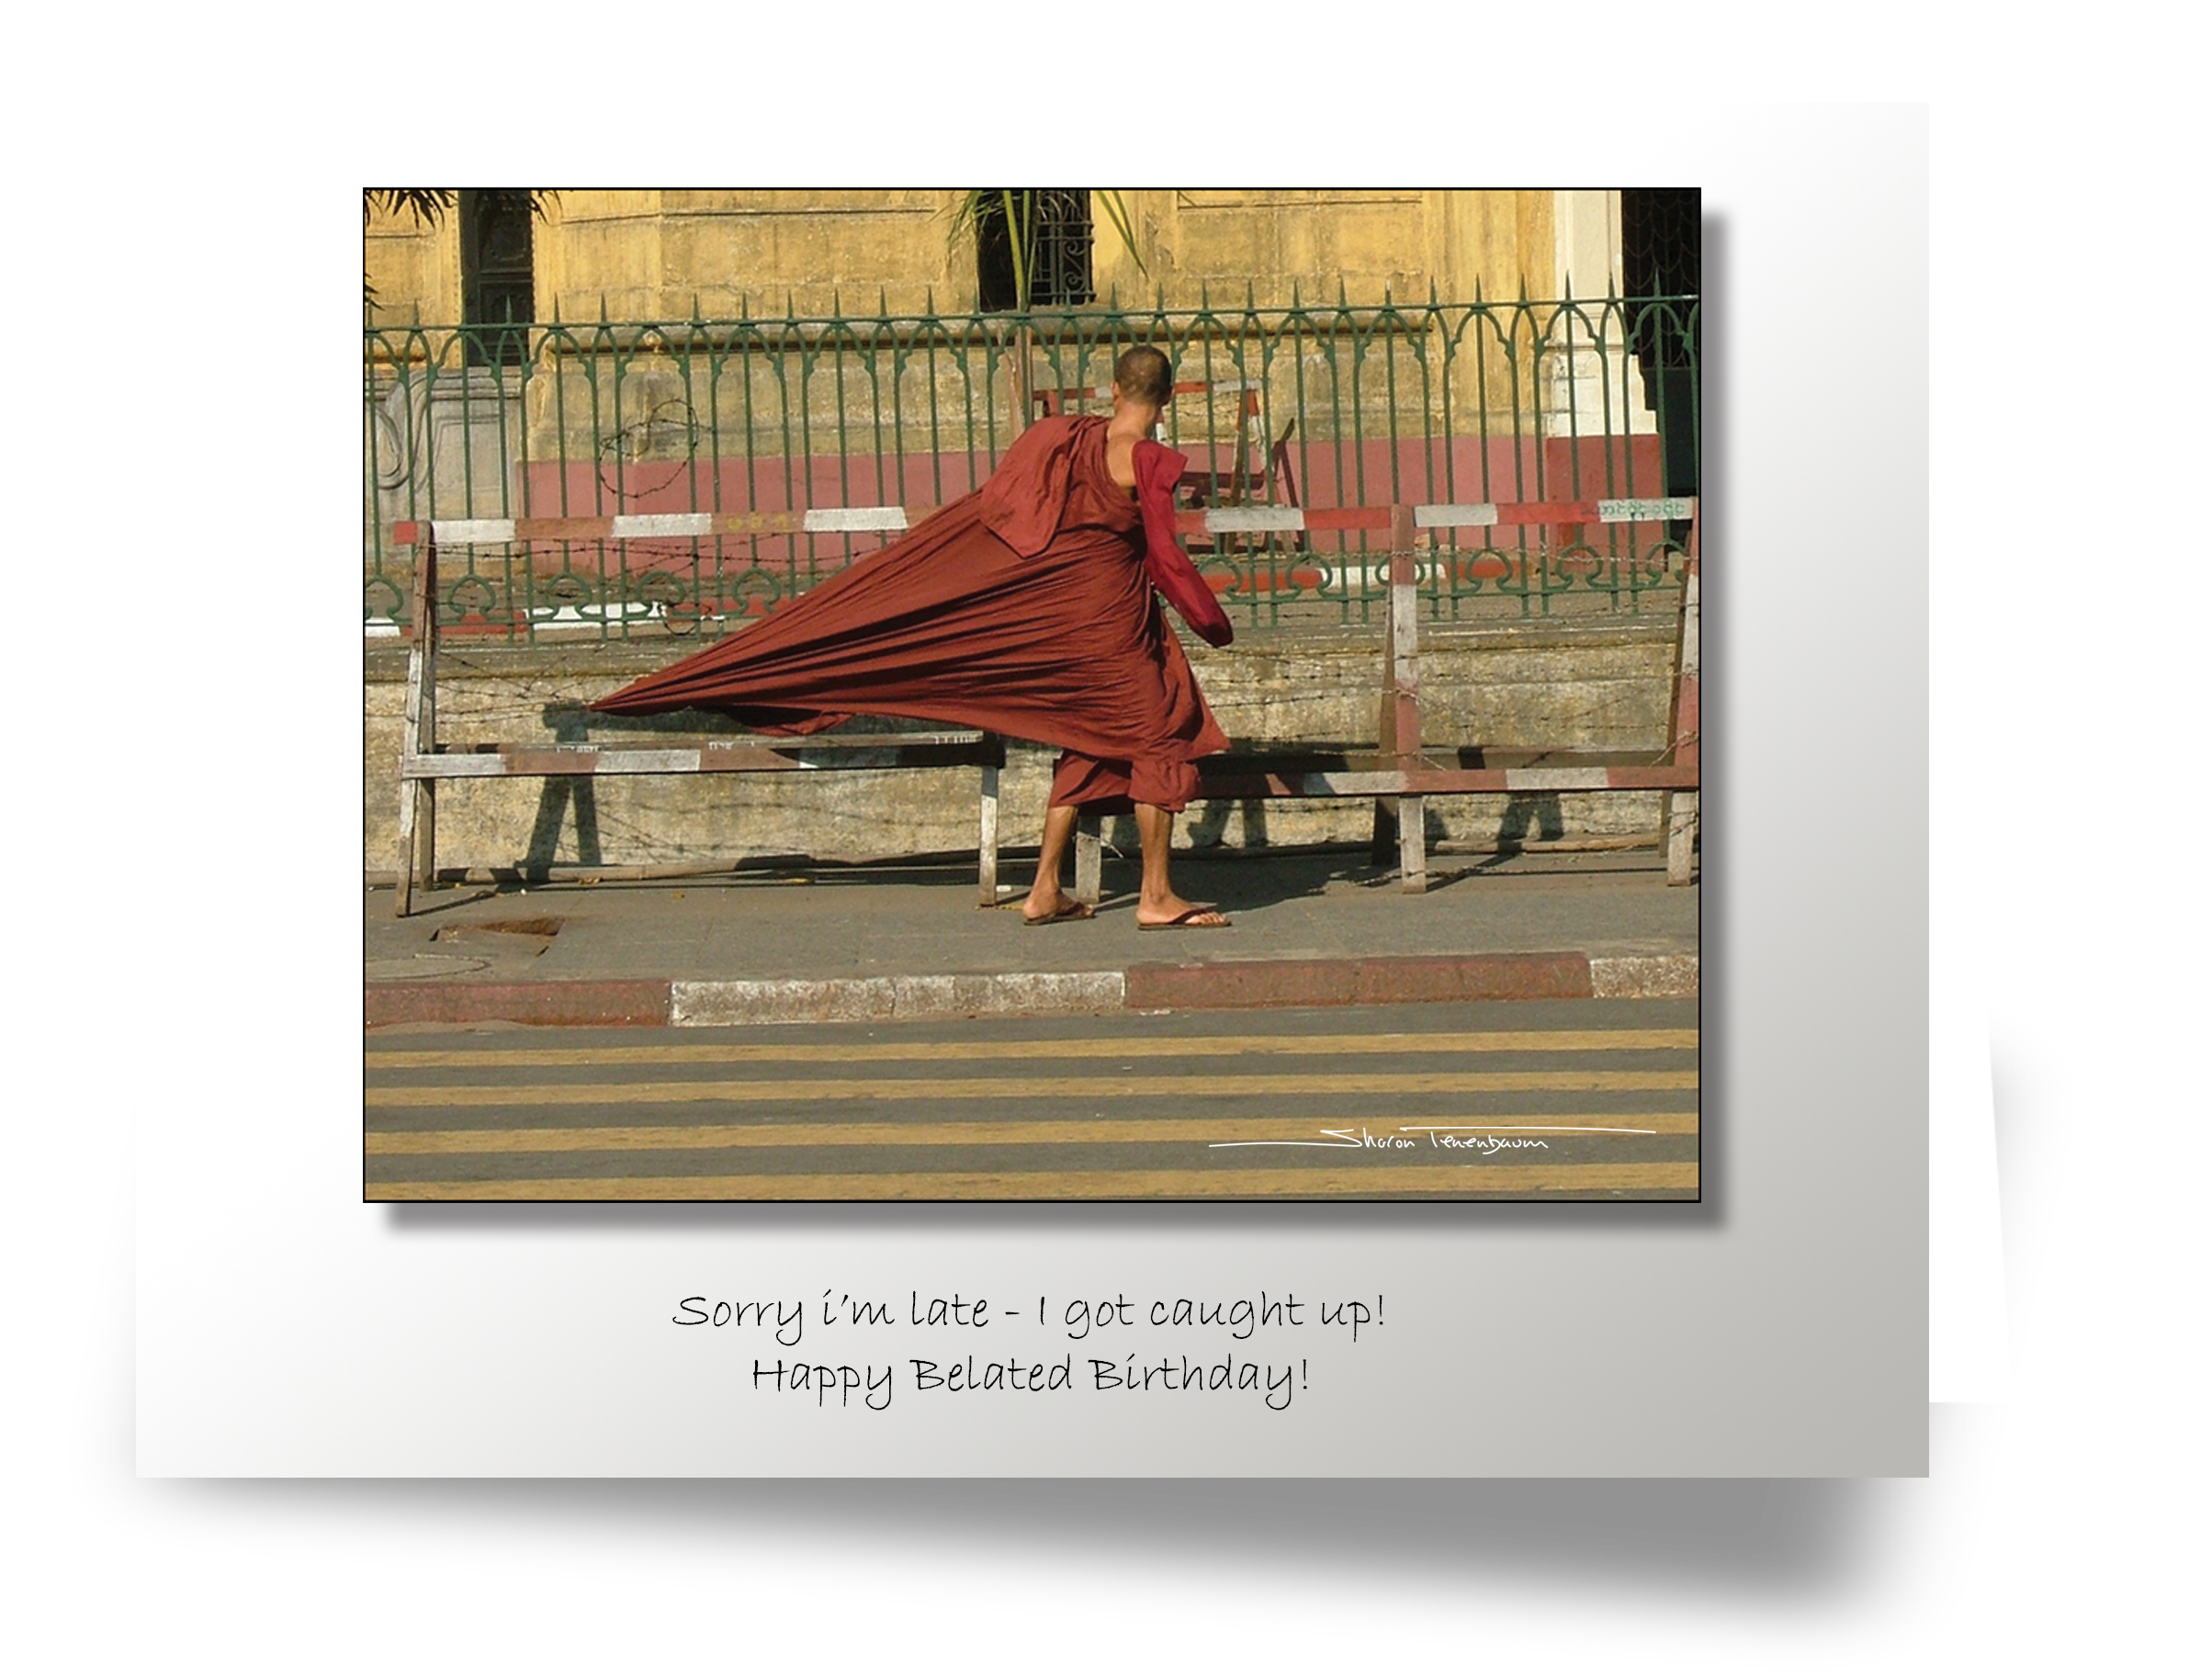 CL001A Monk with Robe Caught